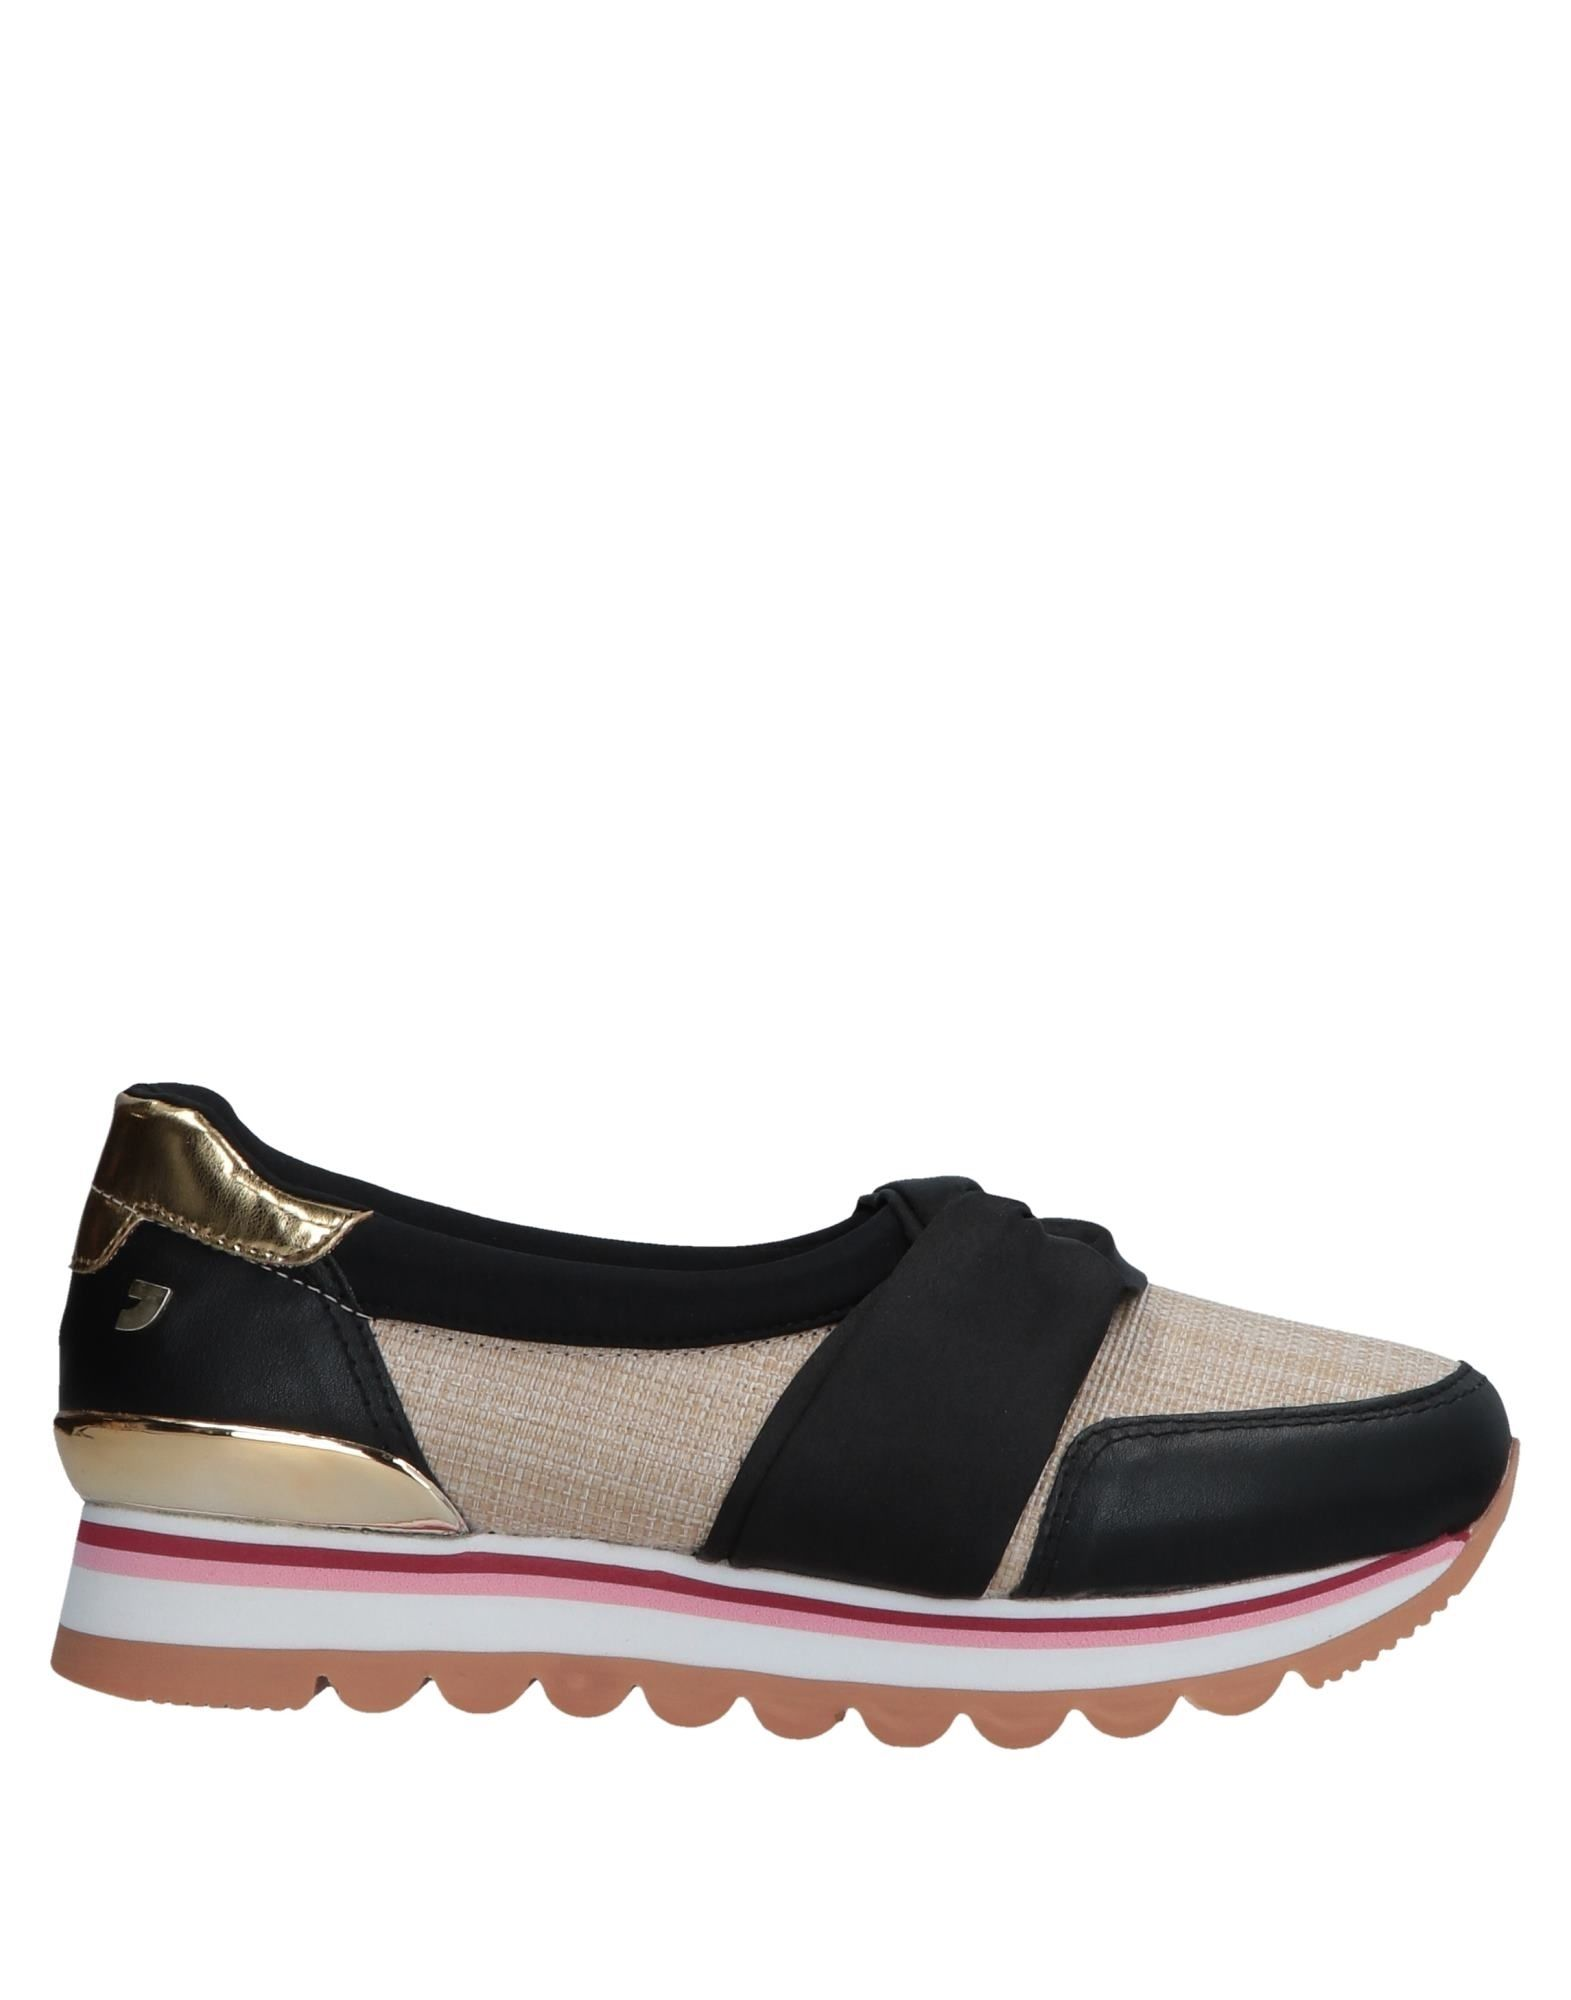 Gioseppo Sneakers - Women Gioseppo Sneakers - online on  Canada - Sneakers 11575822GM 8fca98